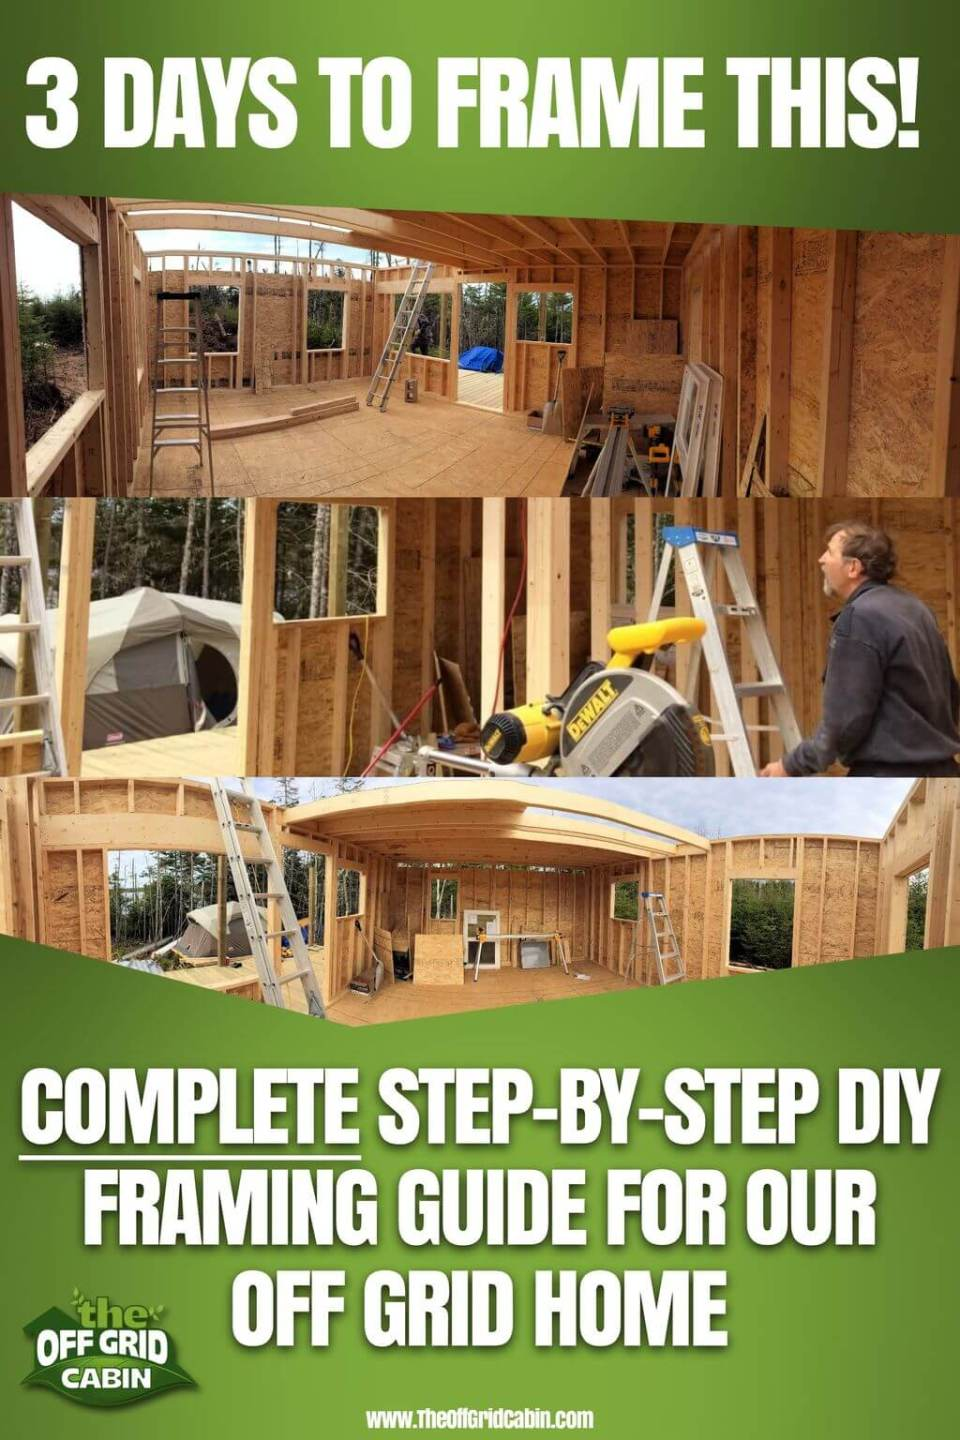 Framing The Off Grid Cabin Walls In 3 Days Day 3 Pin